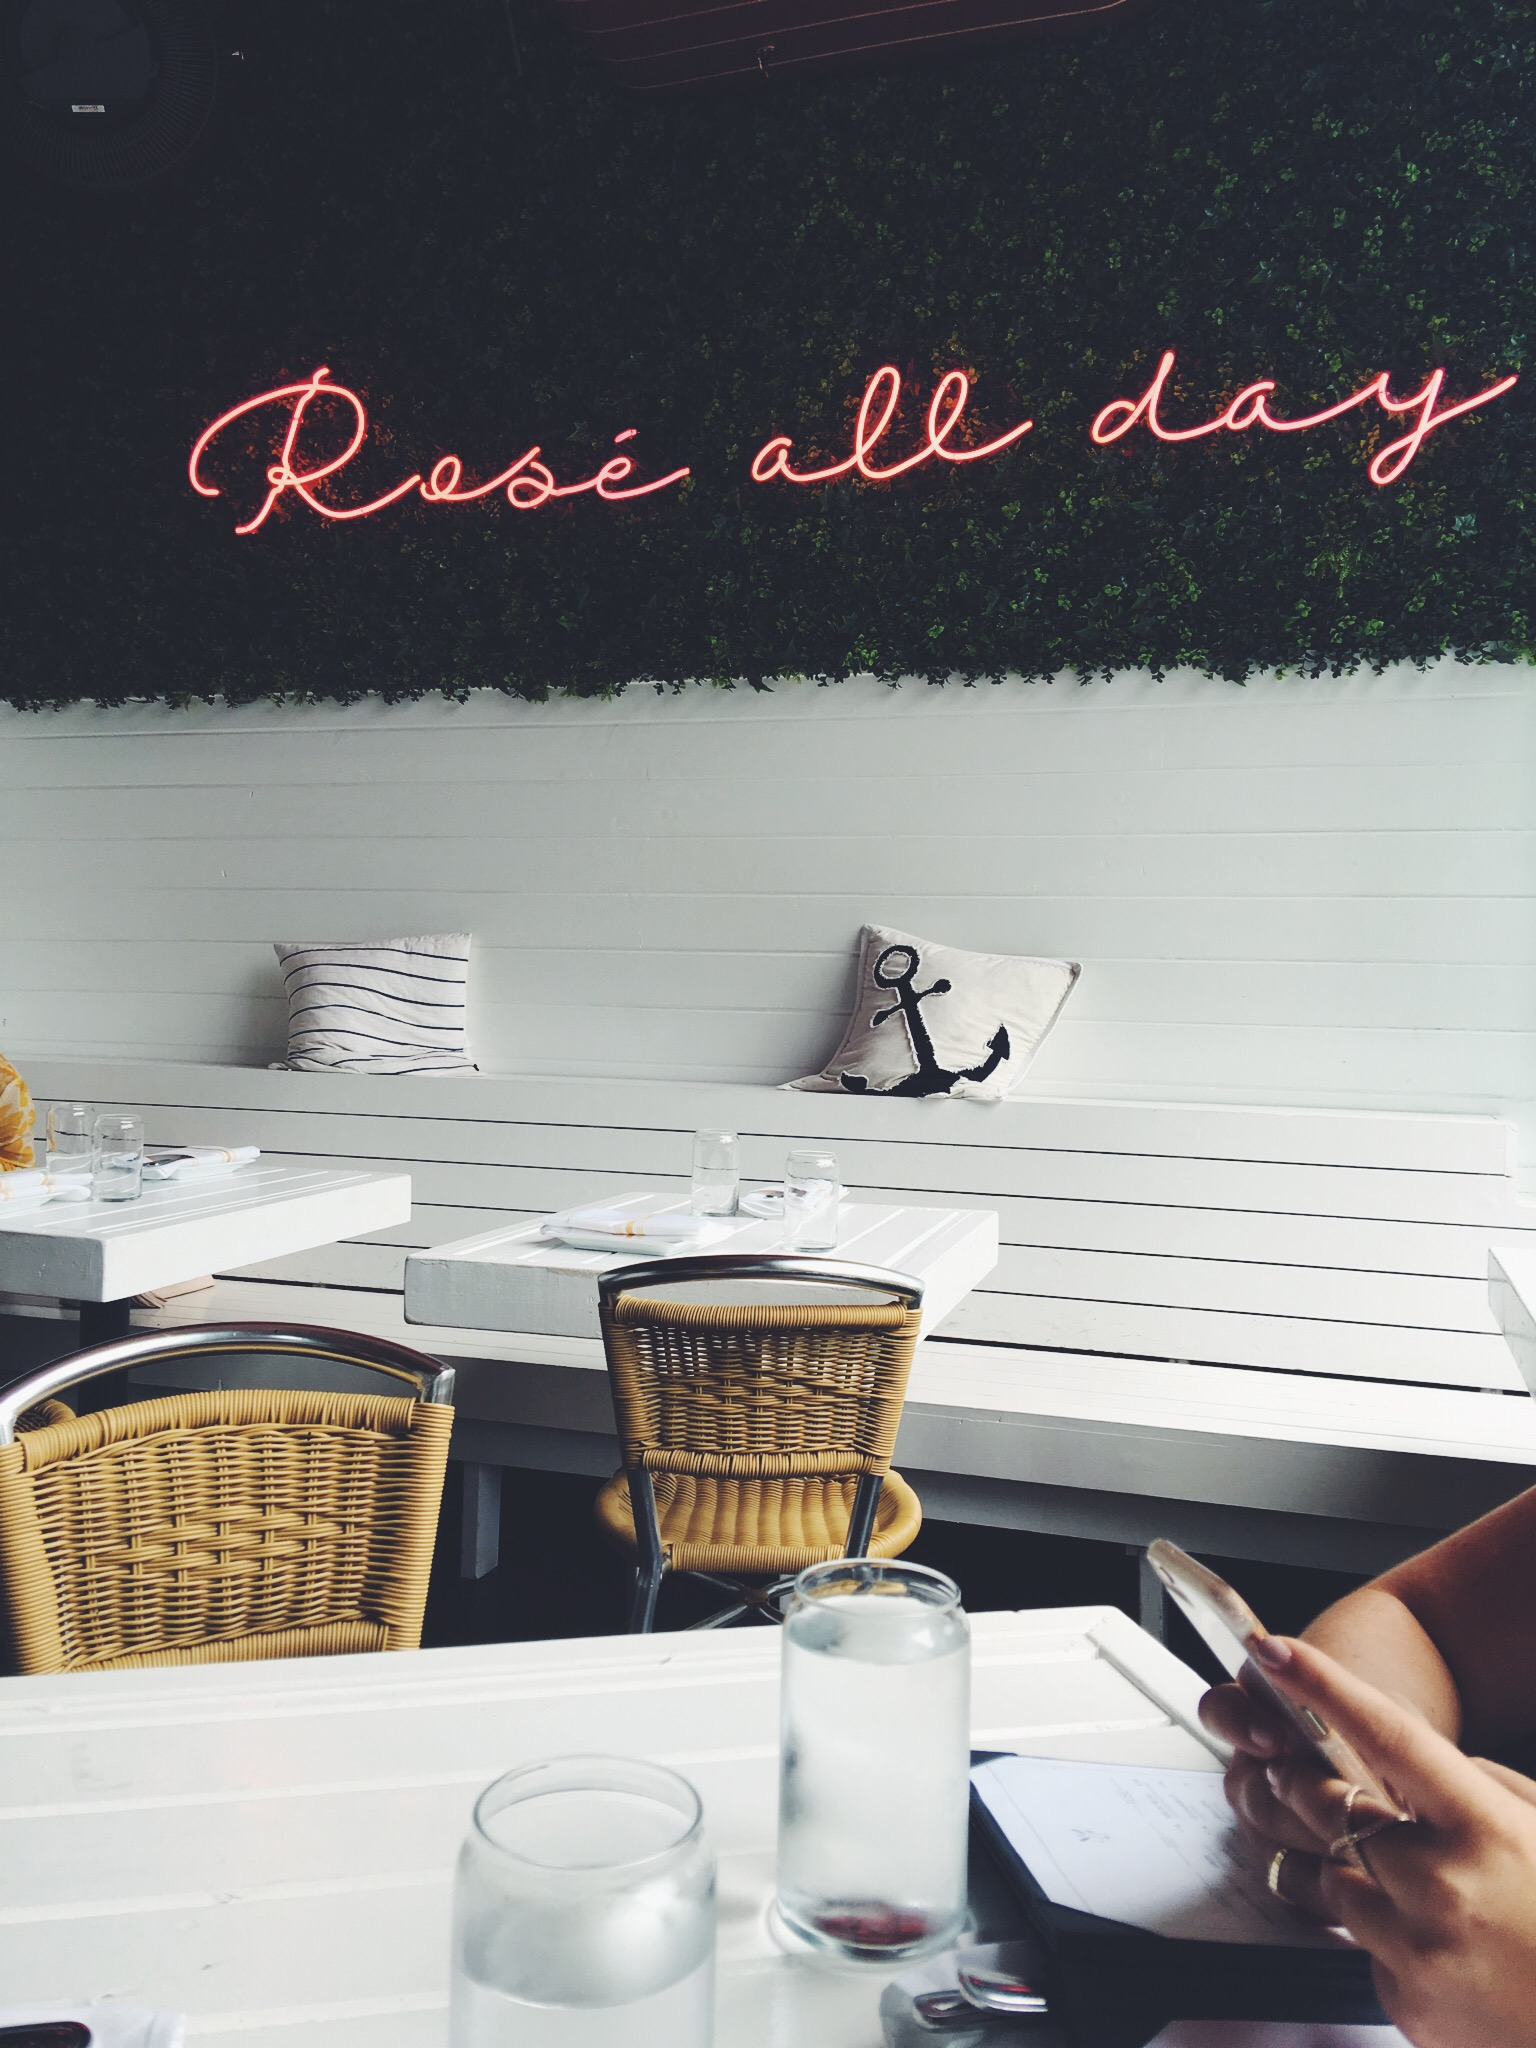 "THE HAMPTON SOCIAL - The famous ""Rose All Day"" sign you've probably seen on instagram before. This restaurant is located in River North. I really loved the food here so it's a good place to come eat and take photos!"